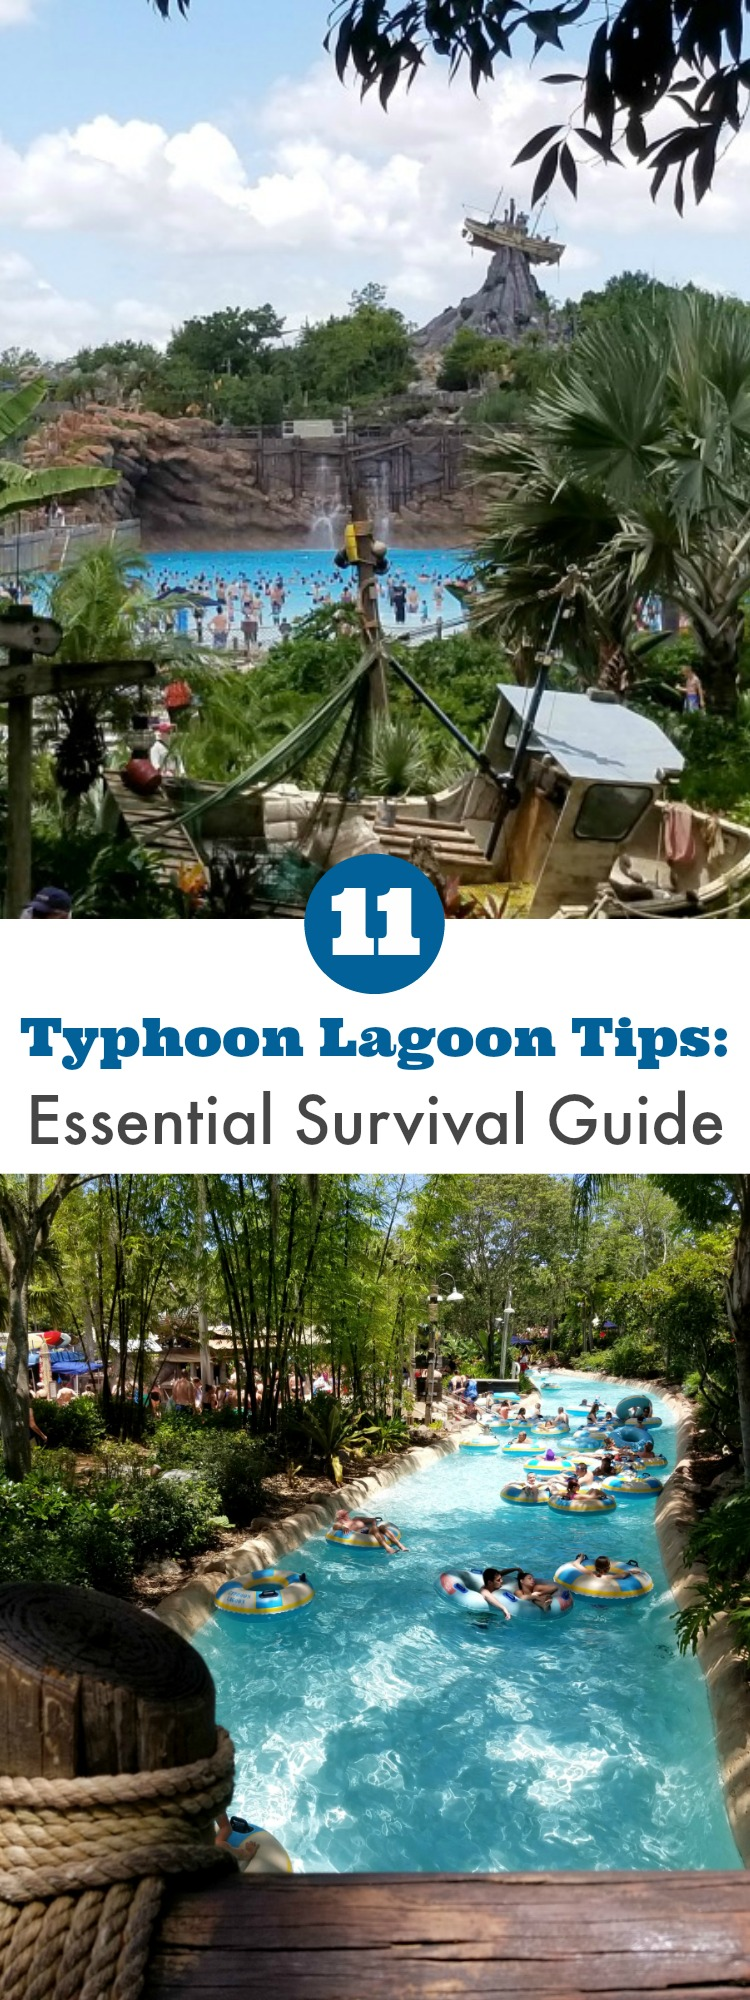 These 11 Typhoon Lagoon tips will help you have an amazing time at Disney's Typhoon Lagoon.